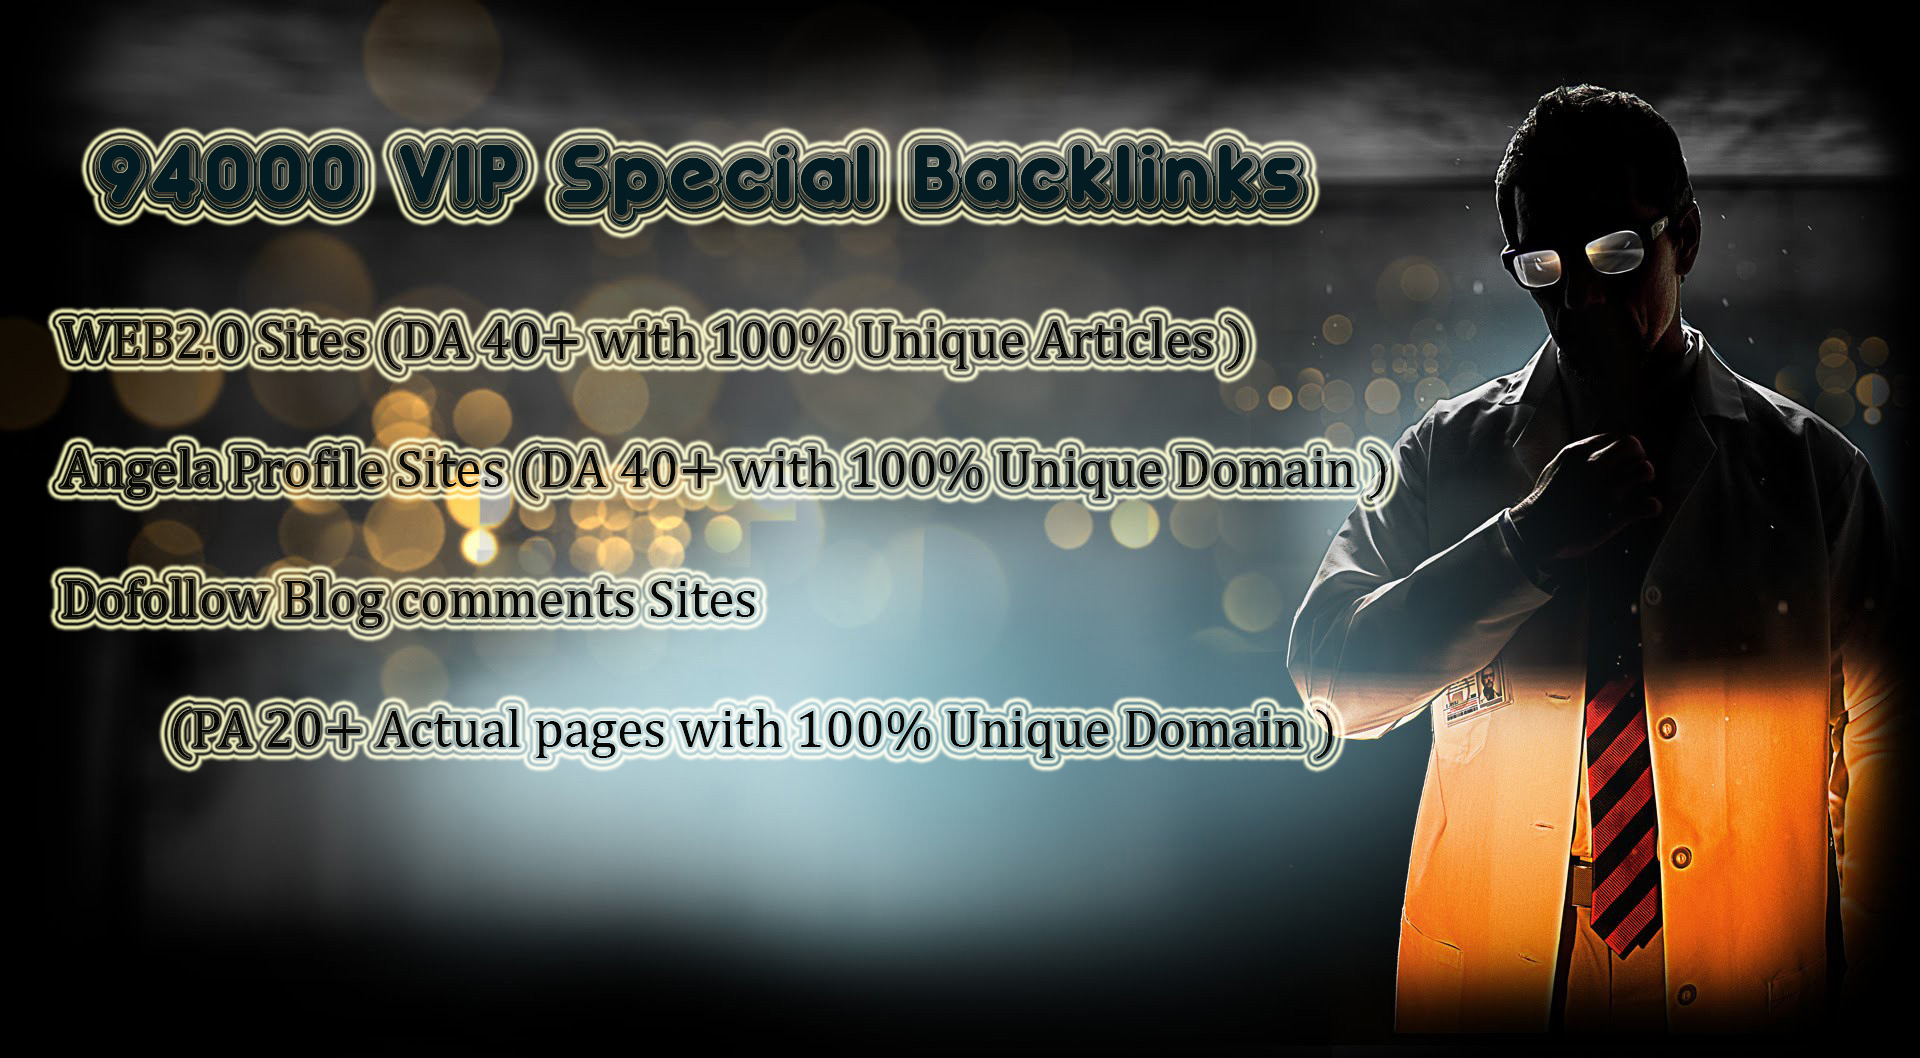 MONTHLY SPECIAL BACKLINK SERVICE WITH 99000 VIP SEO BACKLINKS PUSH YOUR SITE GOOGLE 1ST PAGE,  THROUGH OUR INCREDIBLE DR SEO PACKAGE HIGH QUALITY BACKLINKS TO BOOST YOUR KEYWORDS TO TOP 3 OF GOOGLE